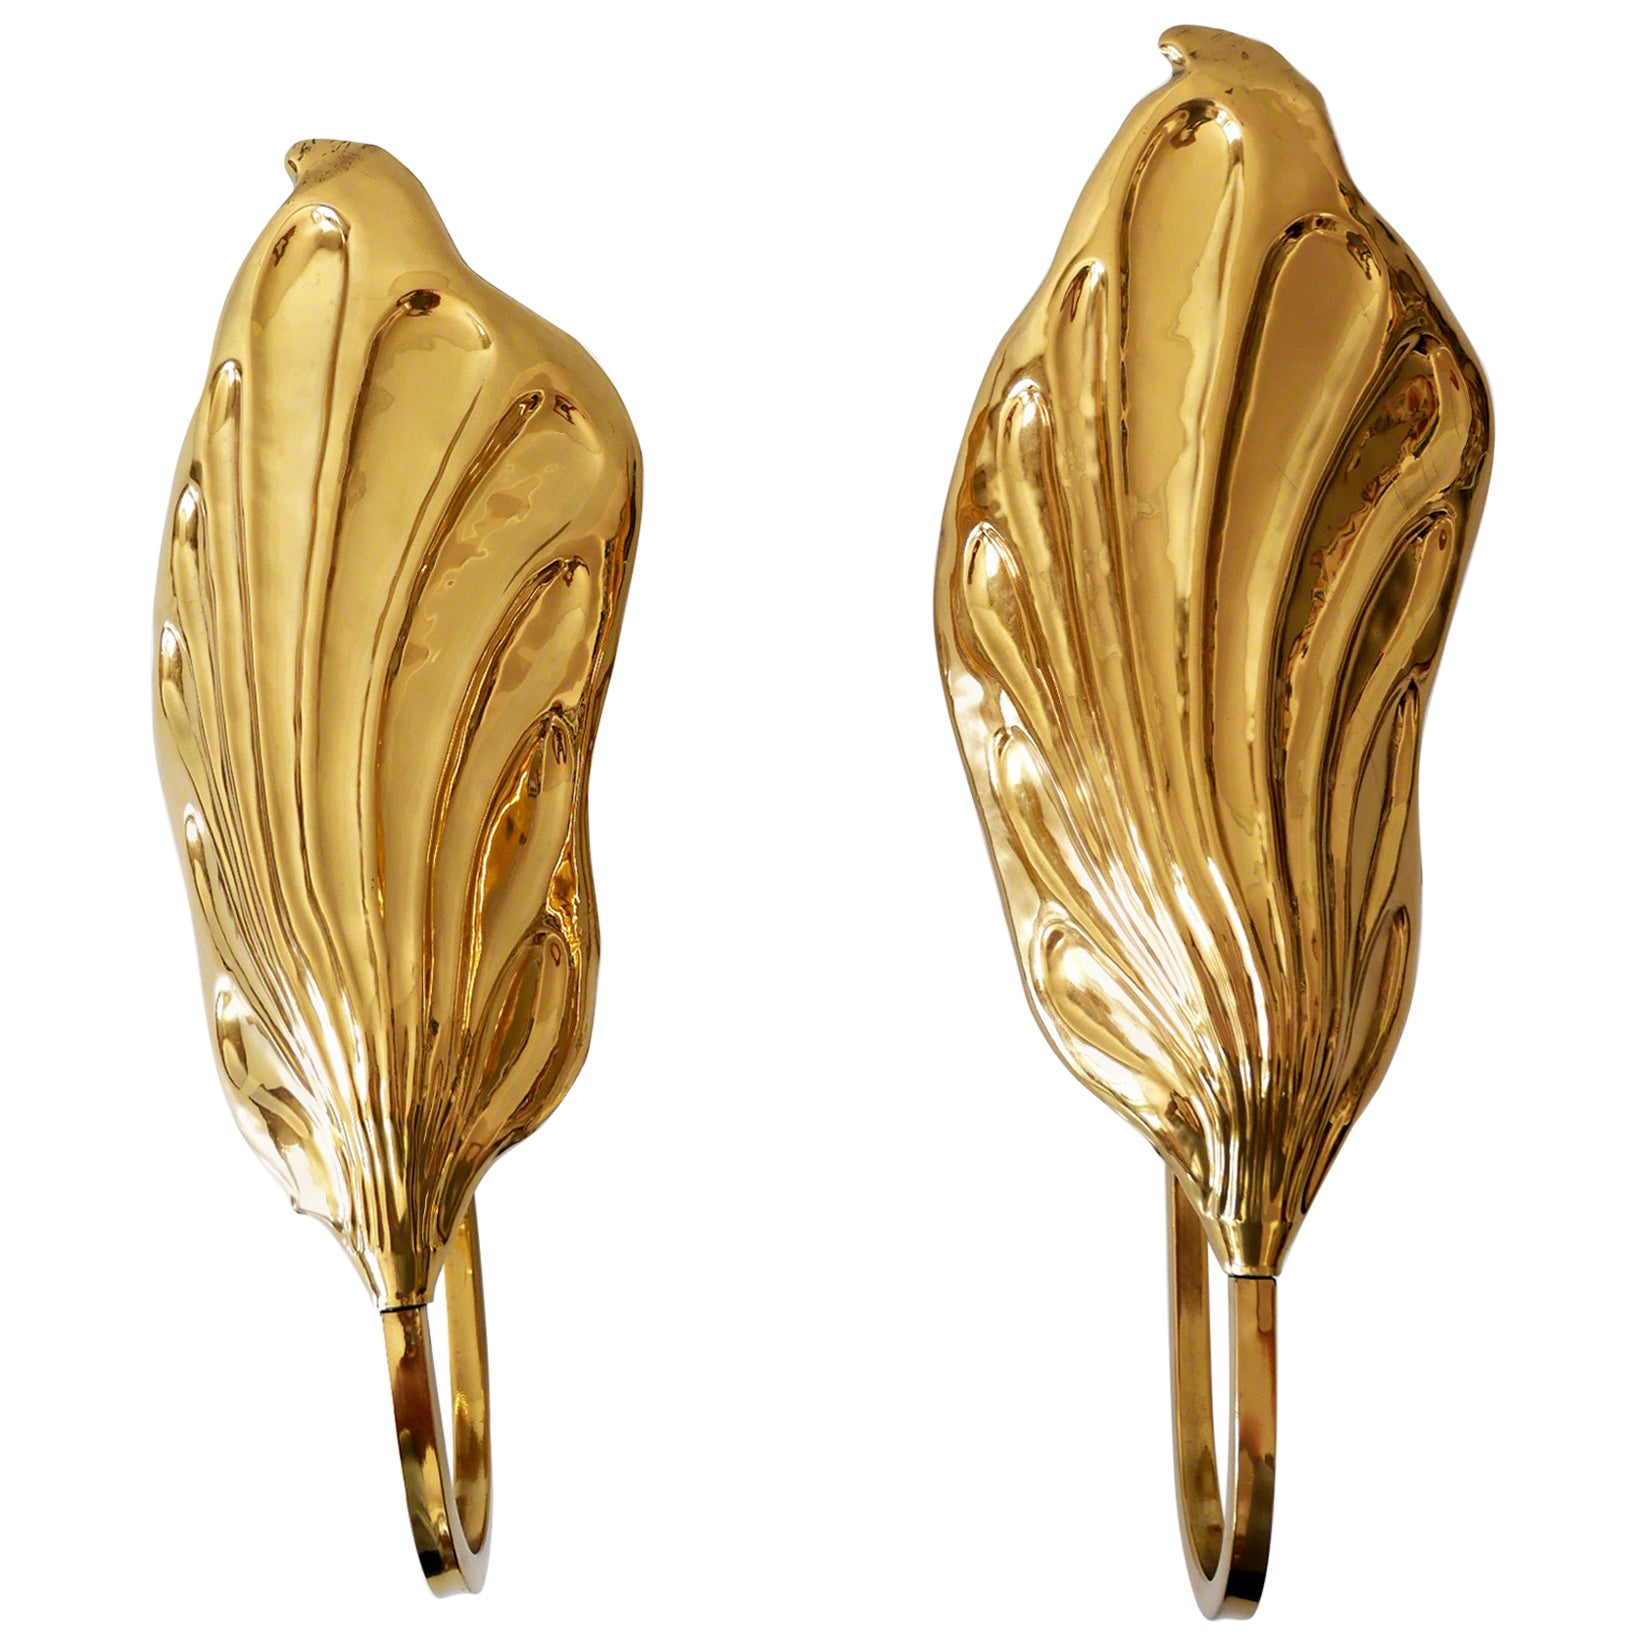 Set of Two Brass Leaf Wall Lamps or Sconces by Carlo Giorgi for Bottega Gadda